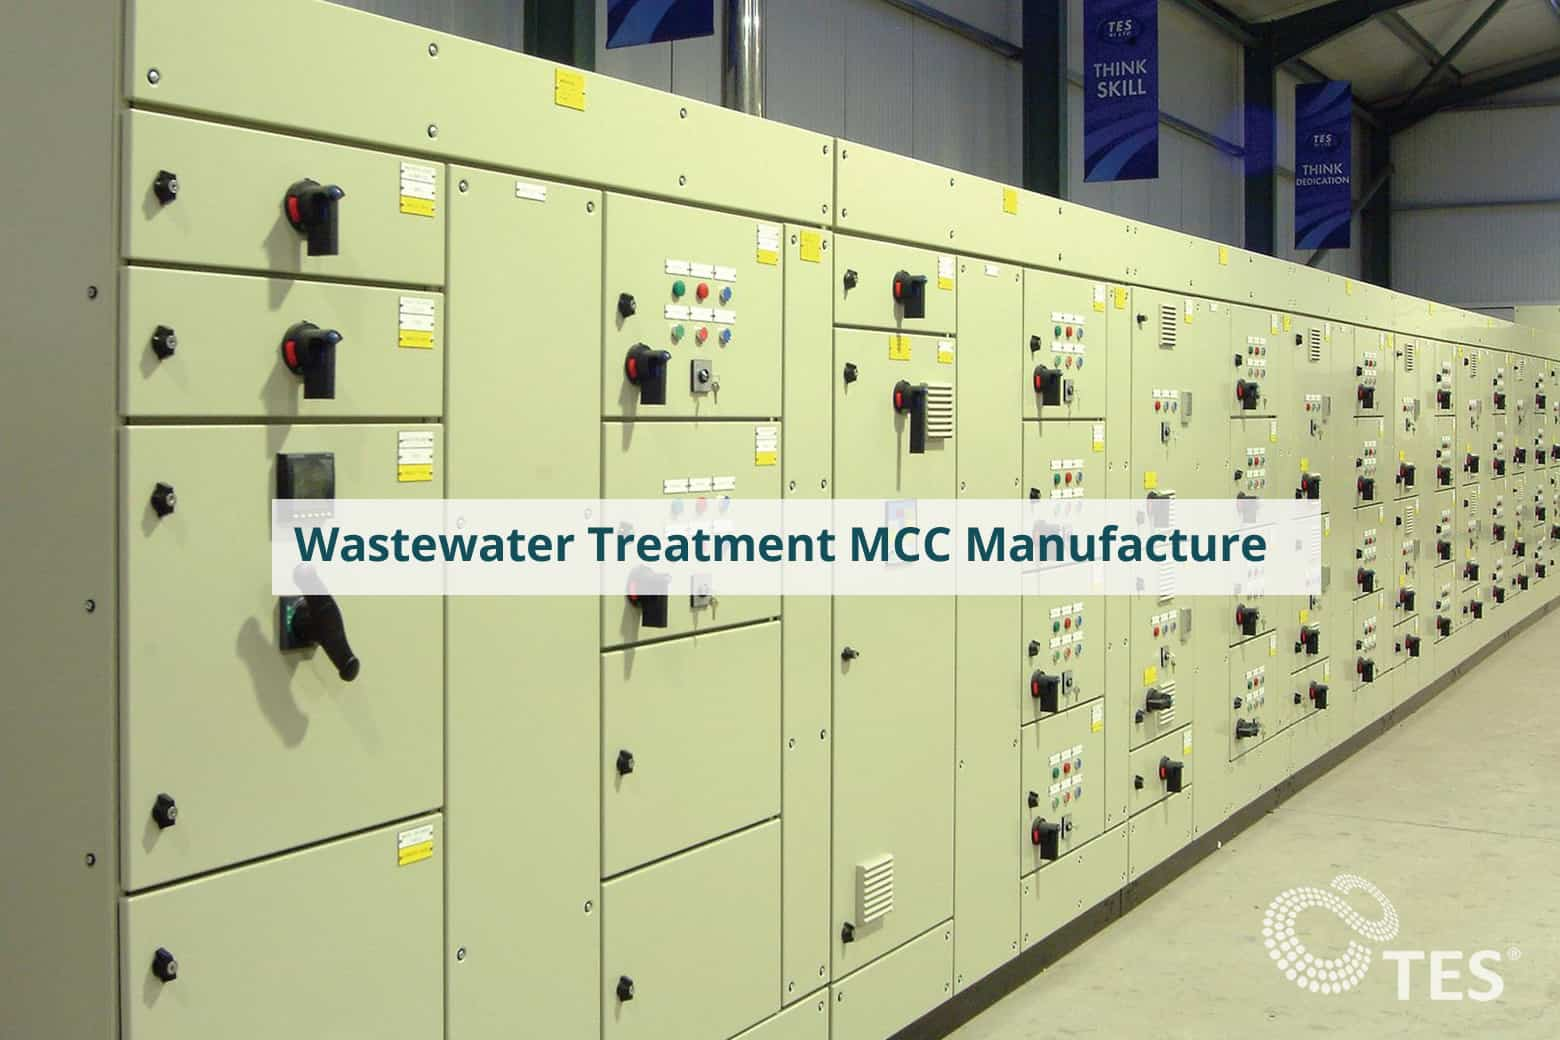 Wastewater Treatment MCC Manufacture